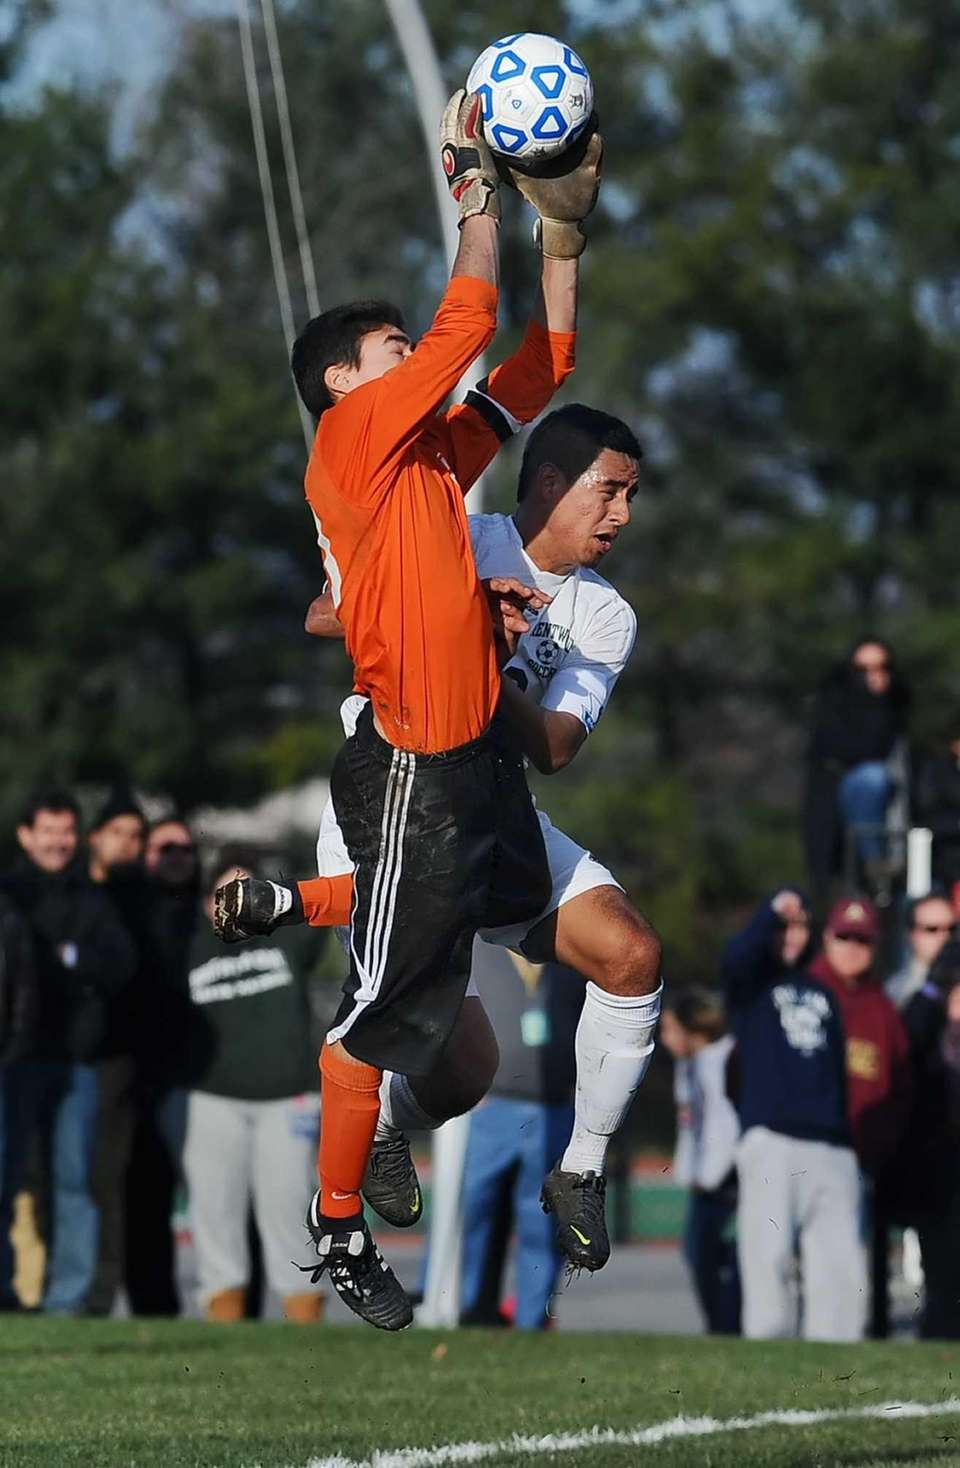 Brentwood's Jonathan Interiano, right, collides with Arlington goalkeeper